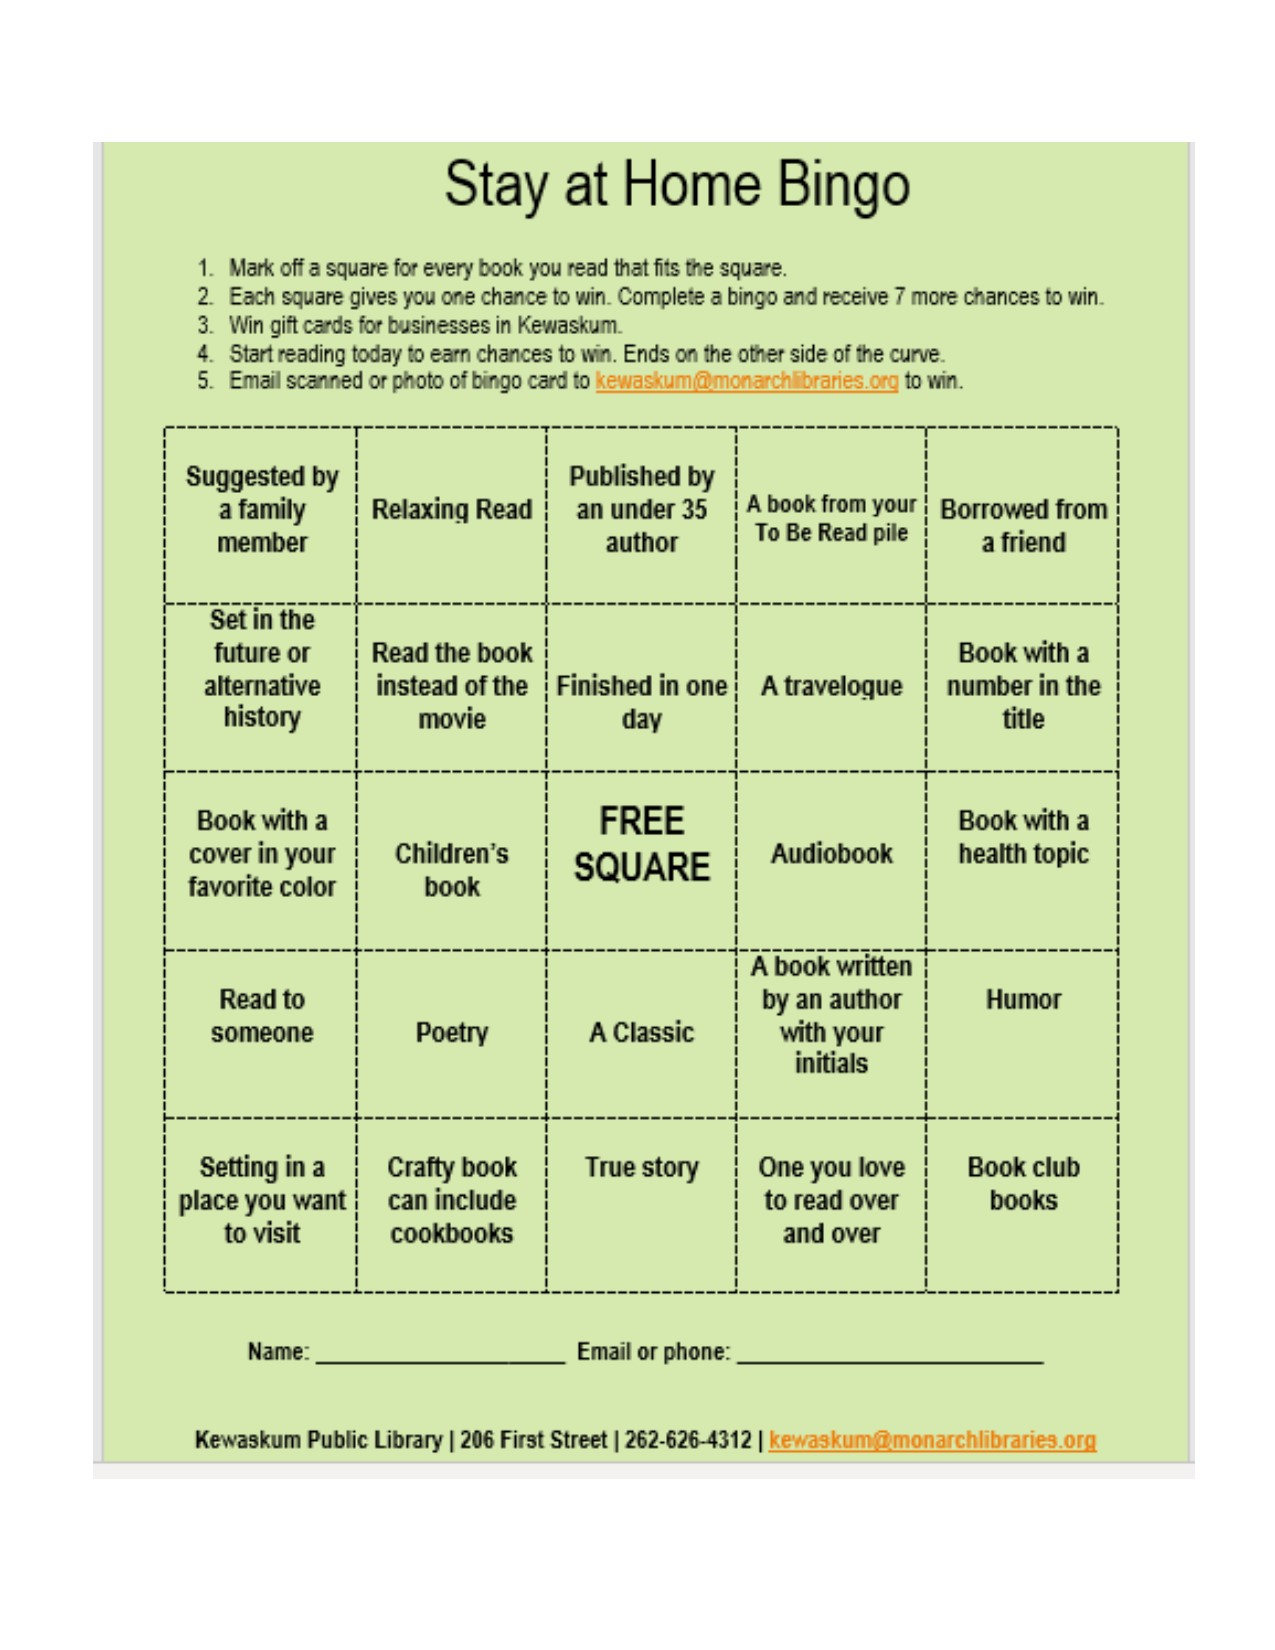 Stay at Home Bingo sheet